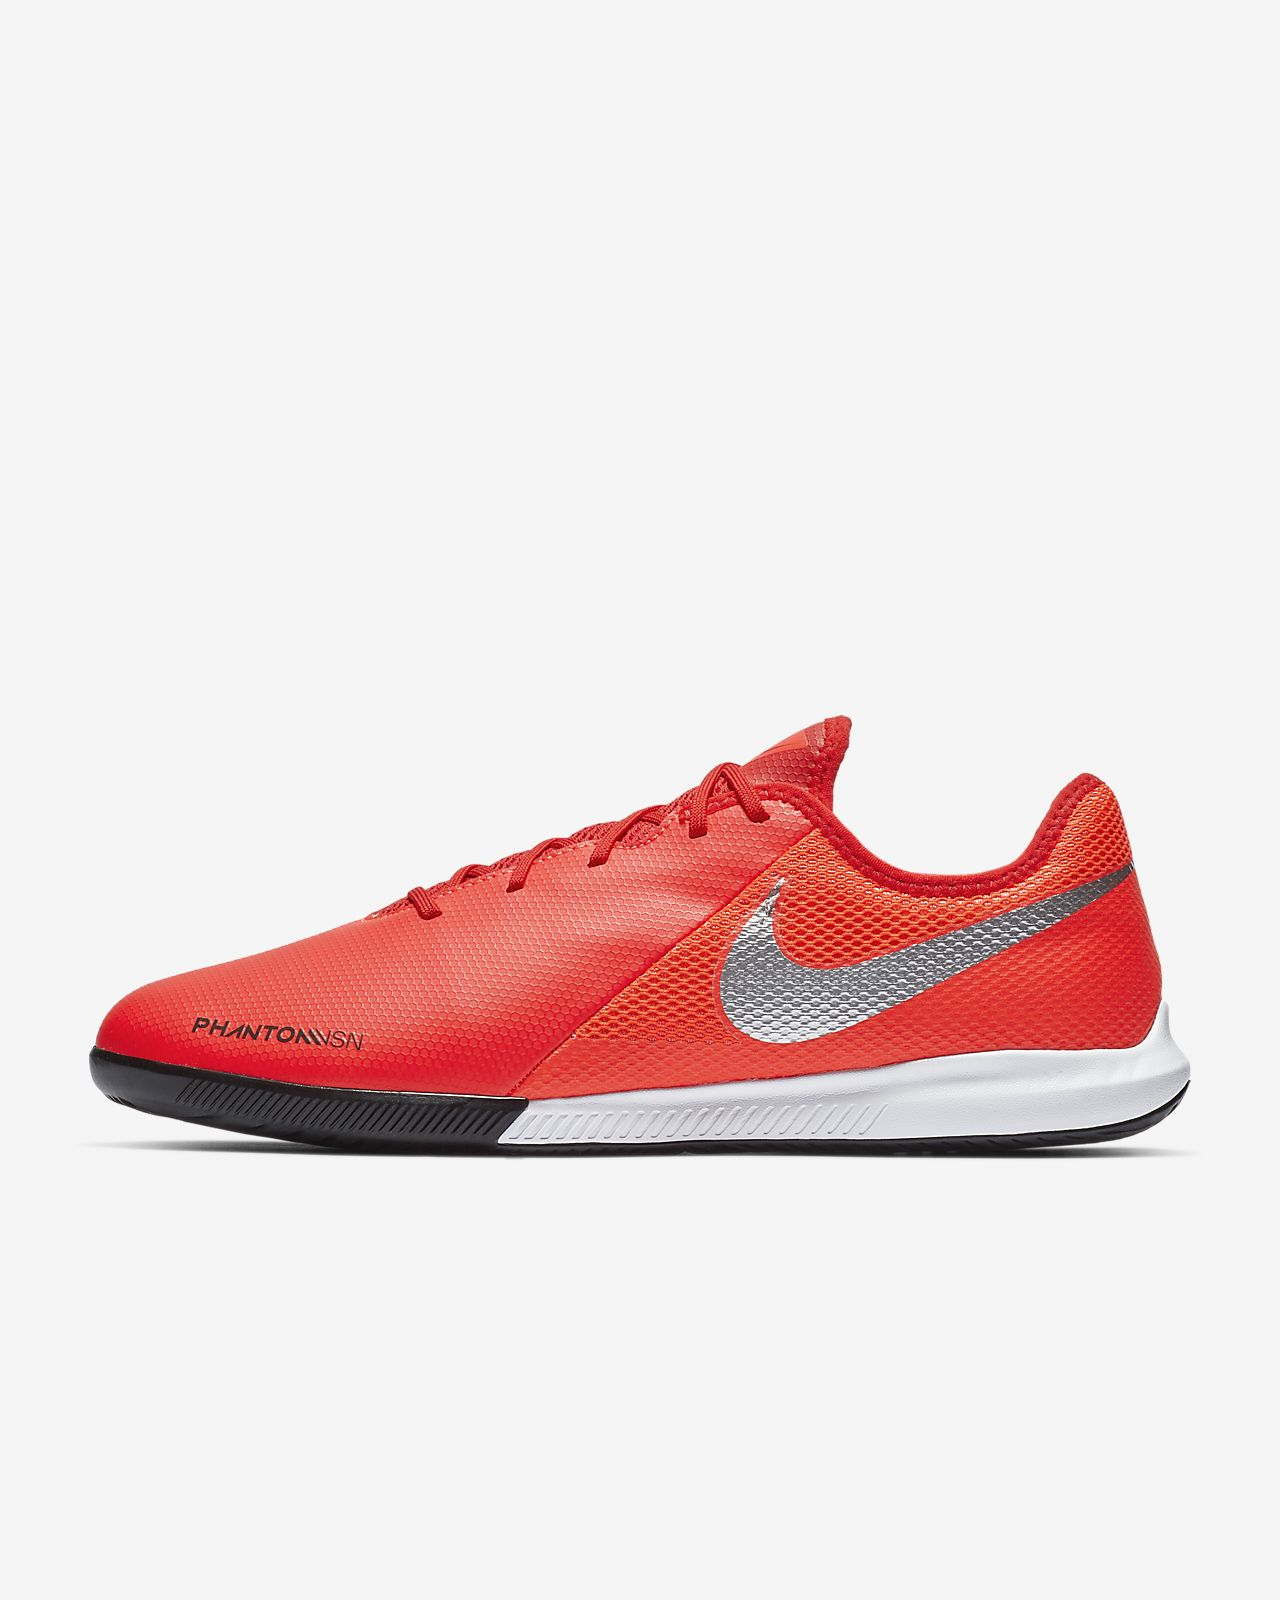 adc309d89e3 Nike PhantomVSN Academy Game Over IC Indoor Court Football Boot ...